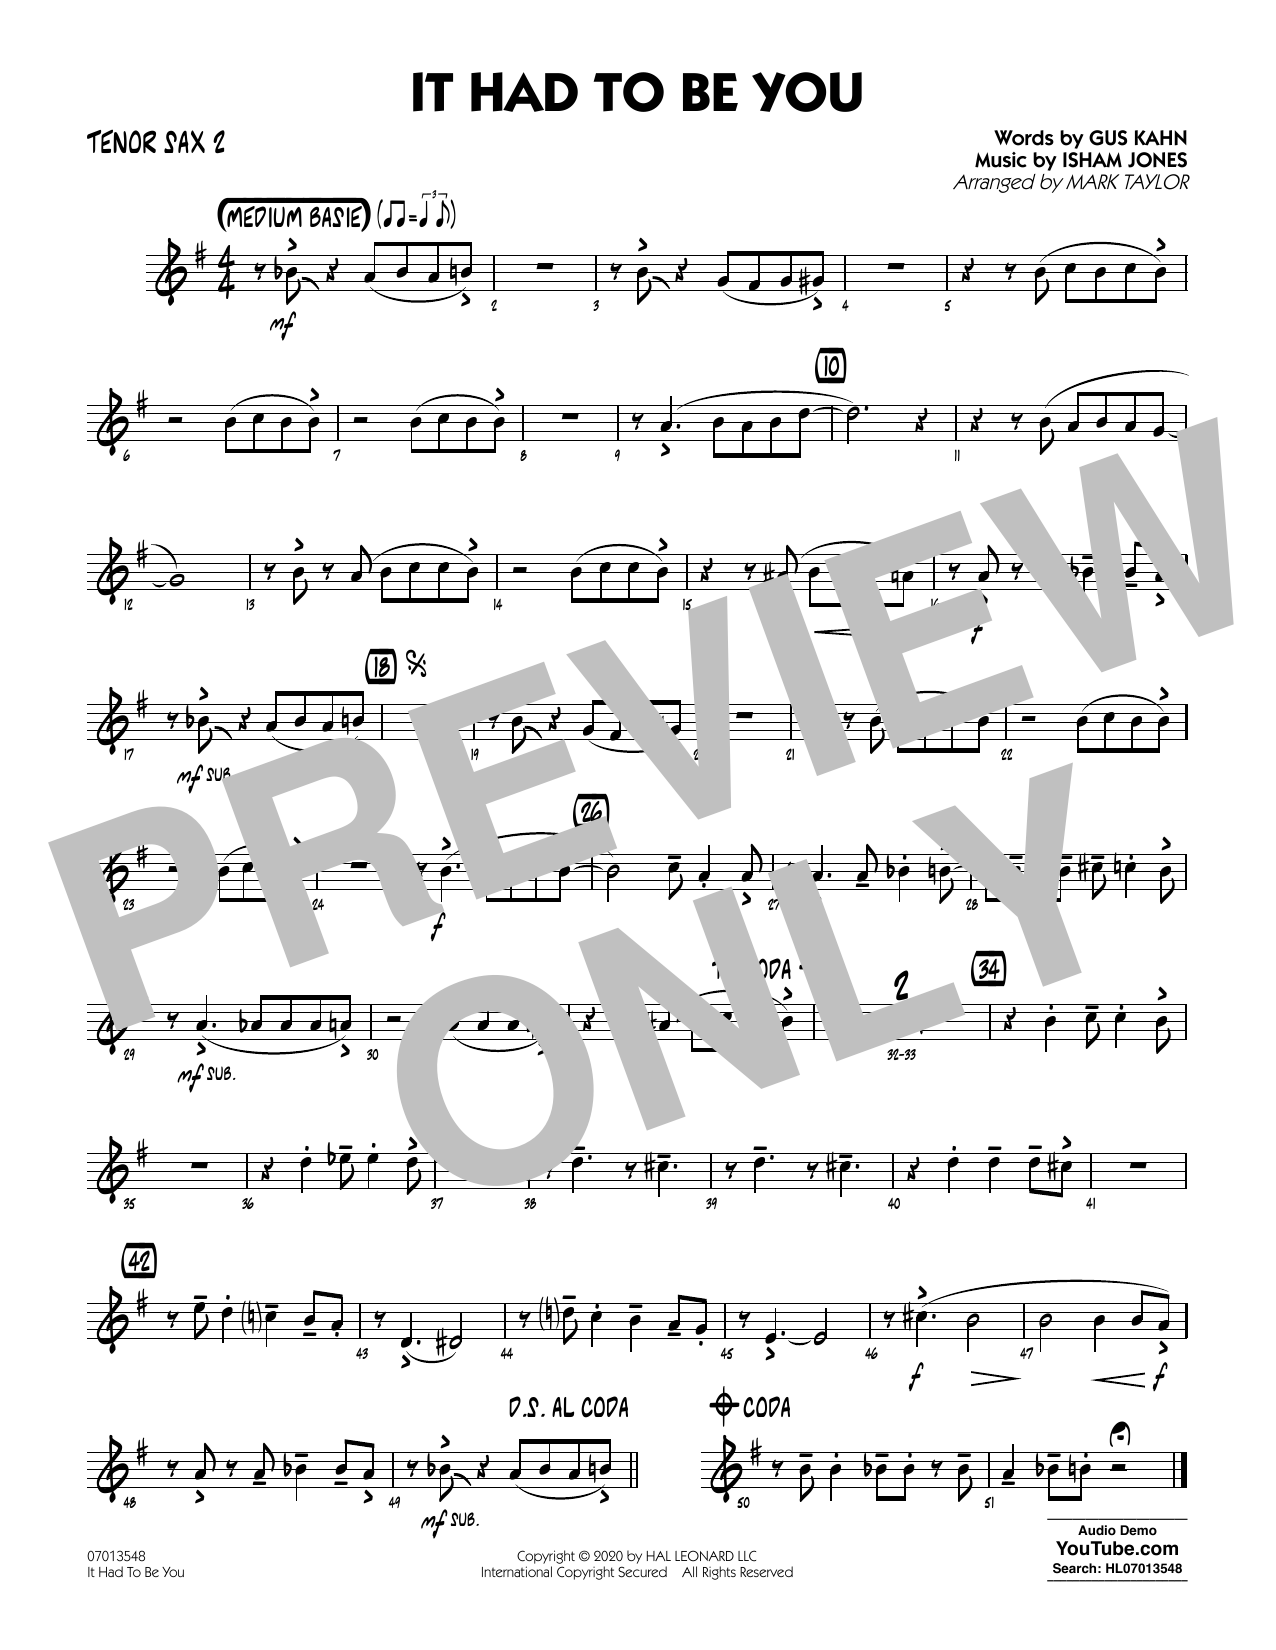 It Had to Be You (arr. Mark Taylor) - Tenor Sax 2 Sheet Music